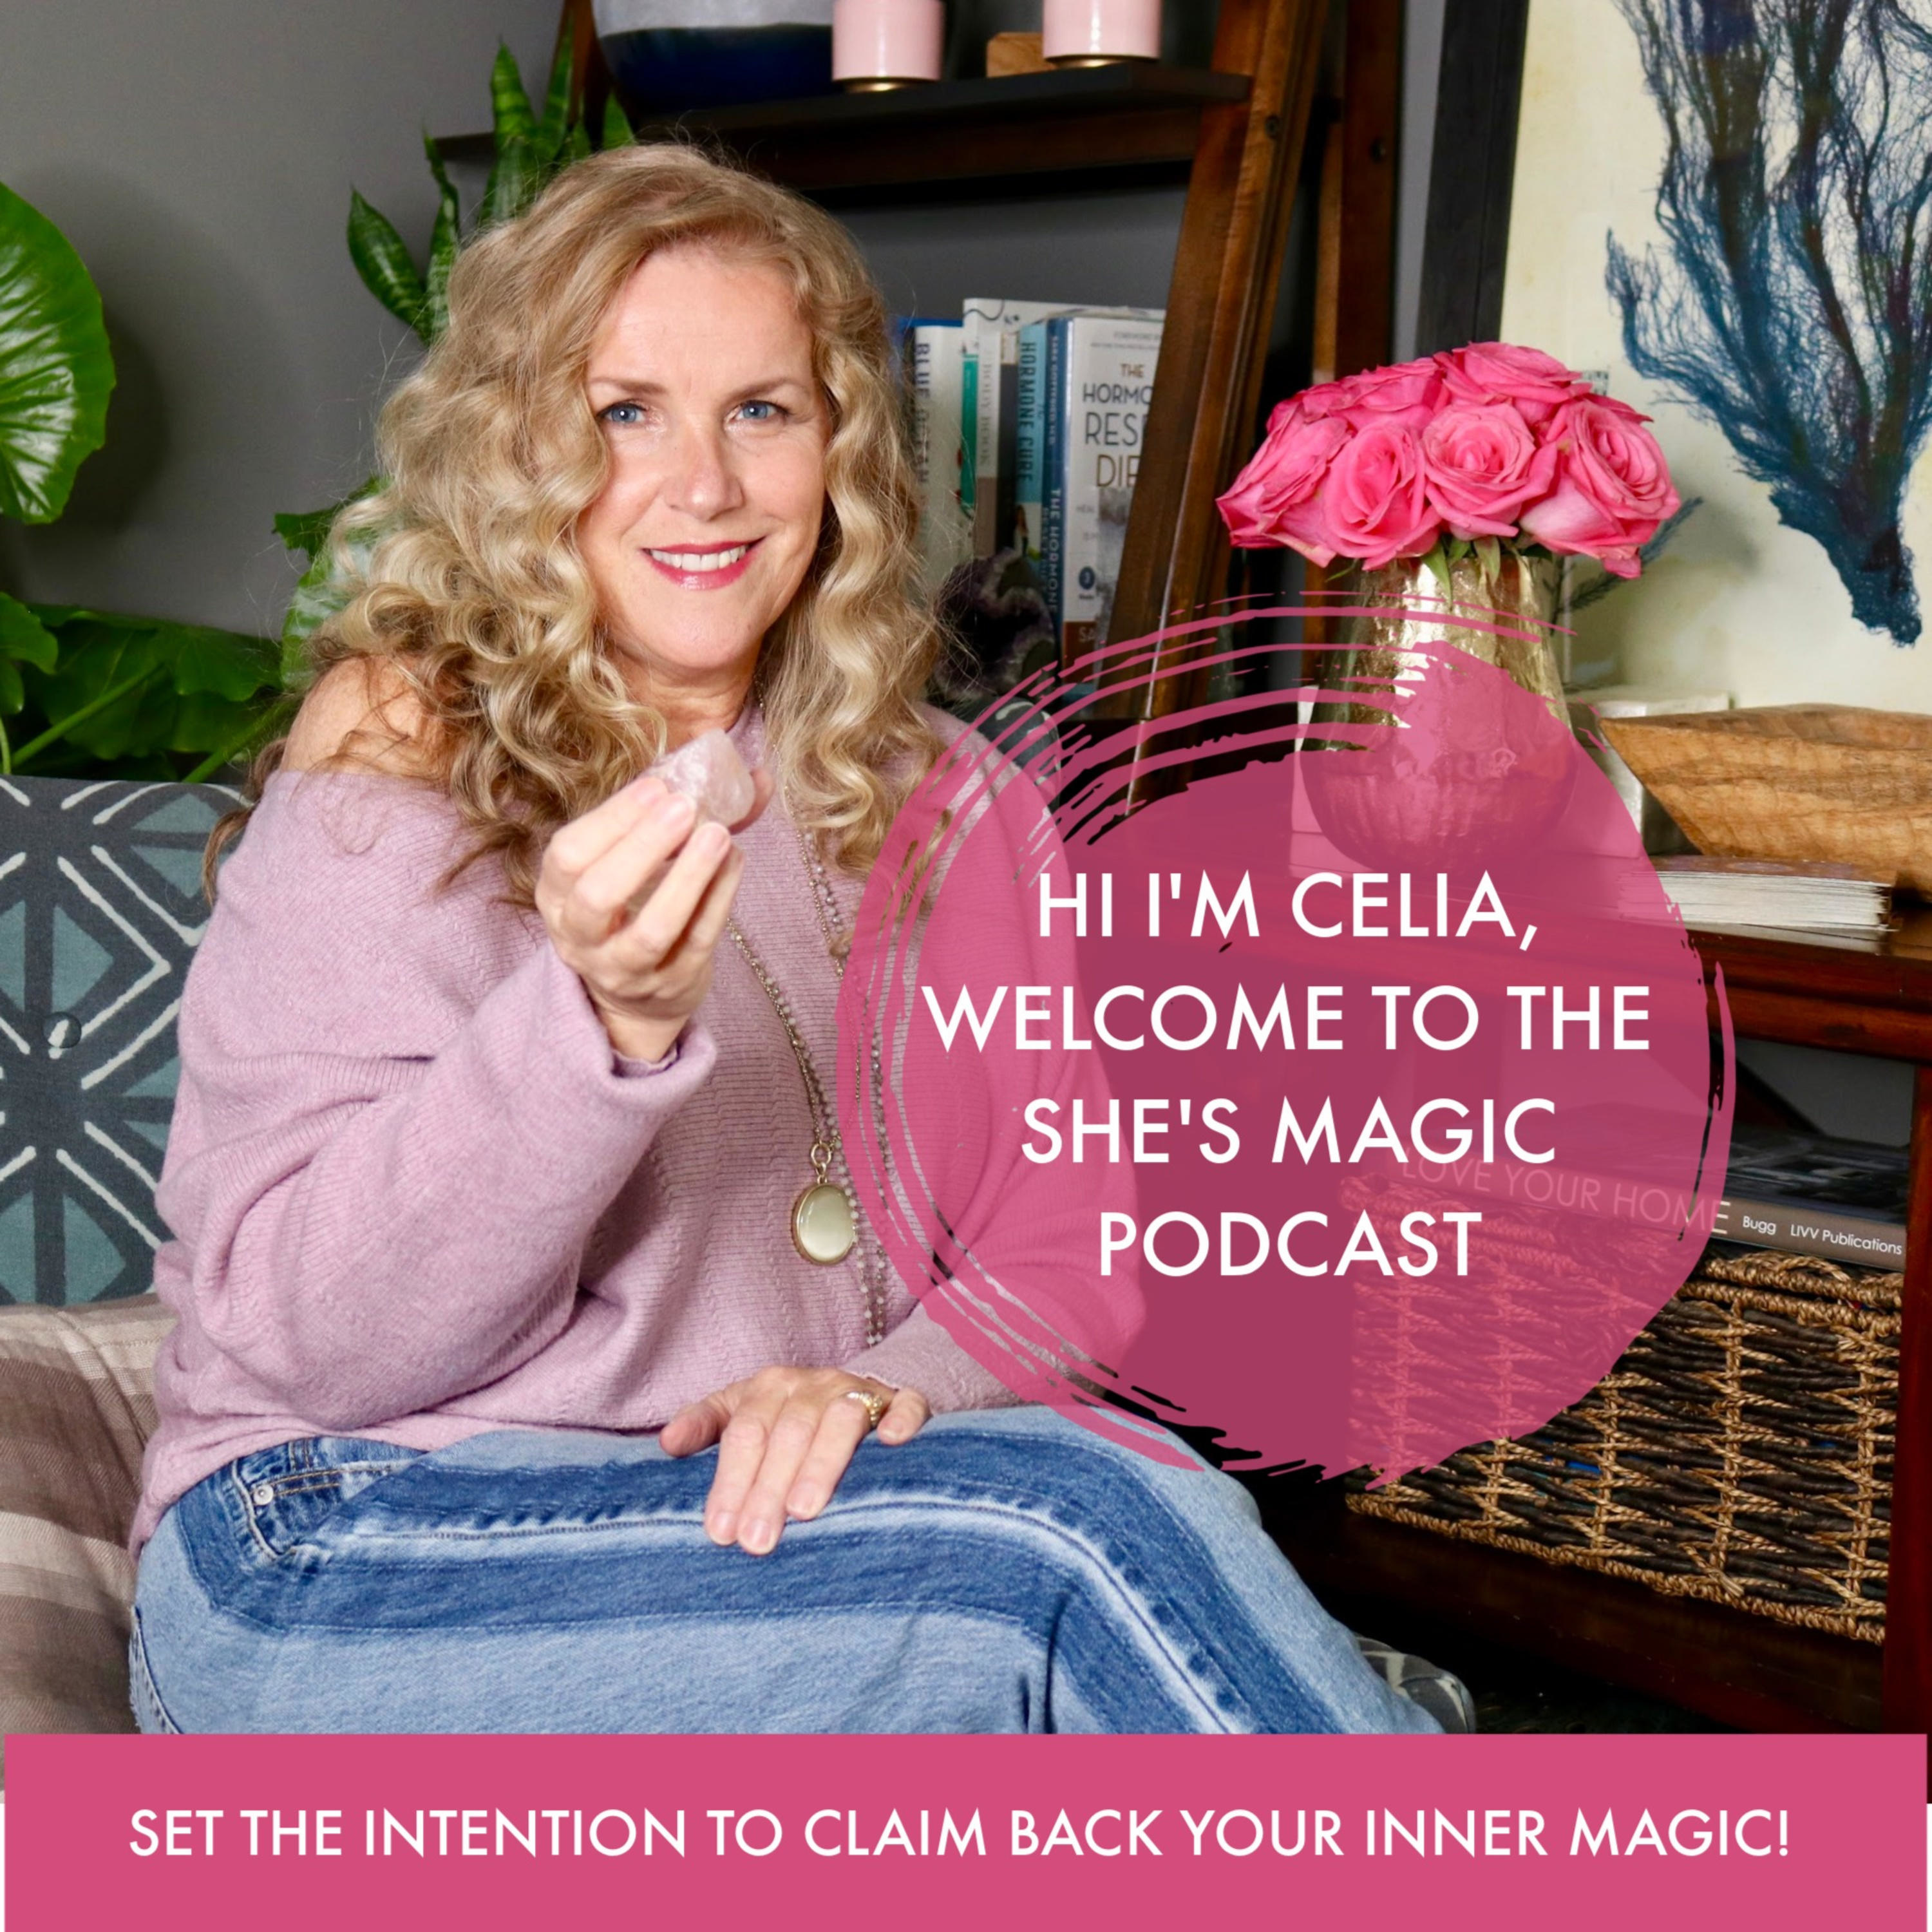 She's Magic hosted by Celia Sasser